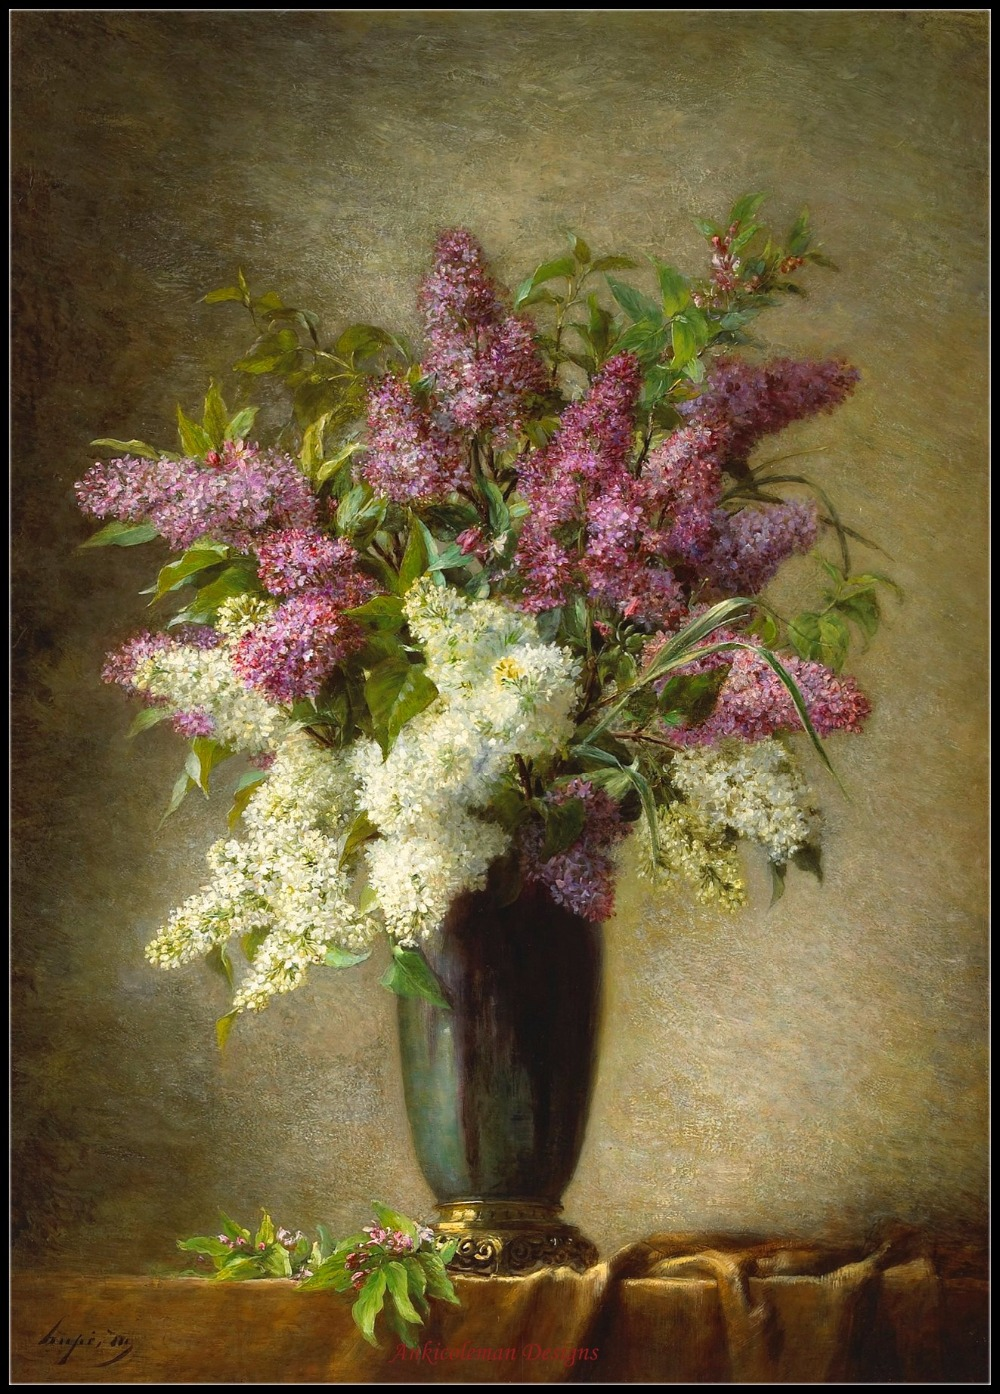 Needlework for Embroidery DIY DMC Color - Counted Cross Stitch Kits 14 ct Oil painting - A Still Life With Lilacs In A VaseNeedlework for Embroidery DIY DMC Color - Counted Cross Stitch Kits 14 ct Oil painting - A Still Life With Lilacs In A Vase